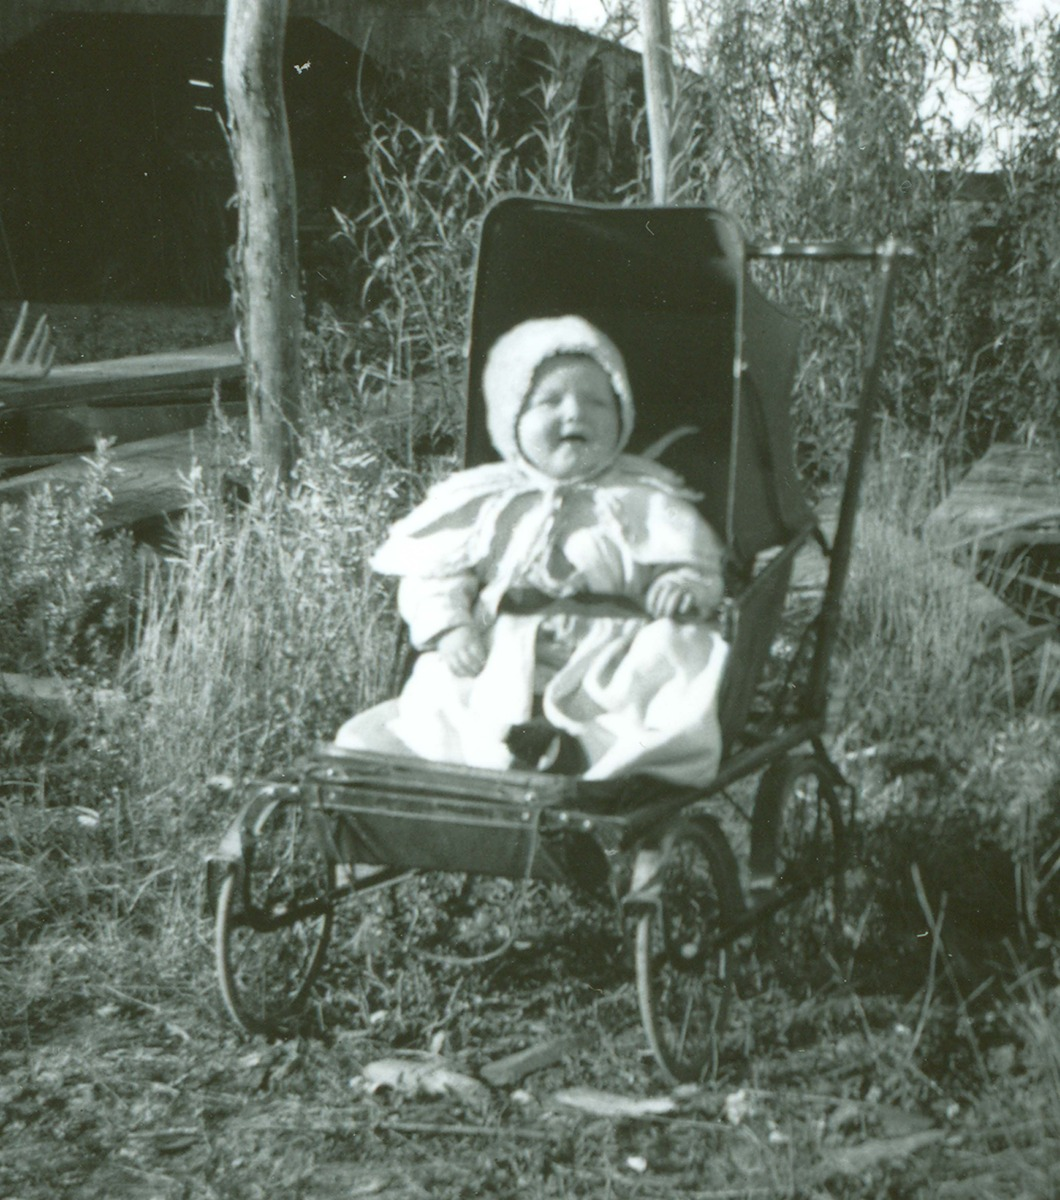 Little Robert Asbridge in a baby carriage at the Lazy X Ranch